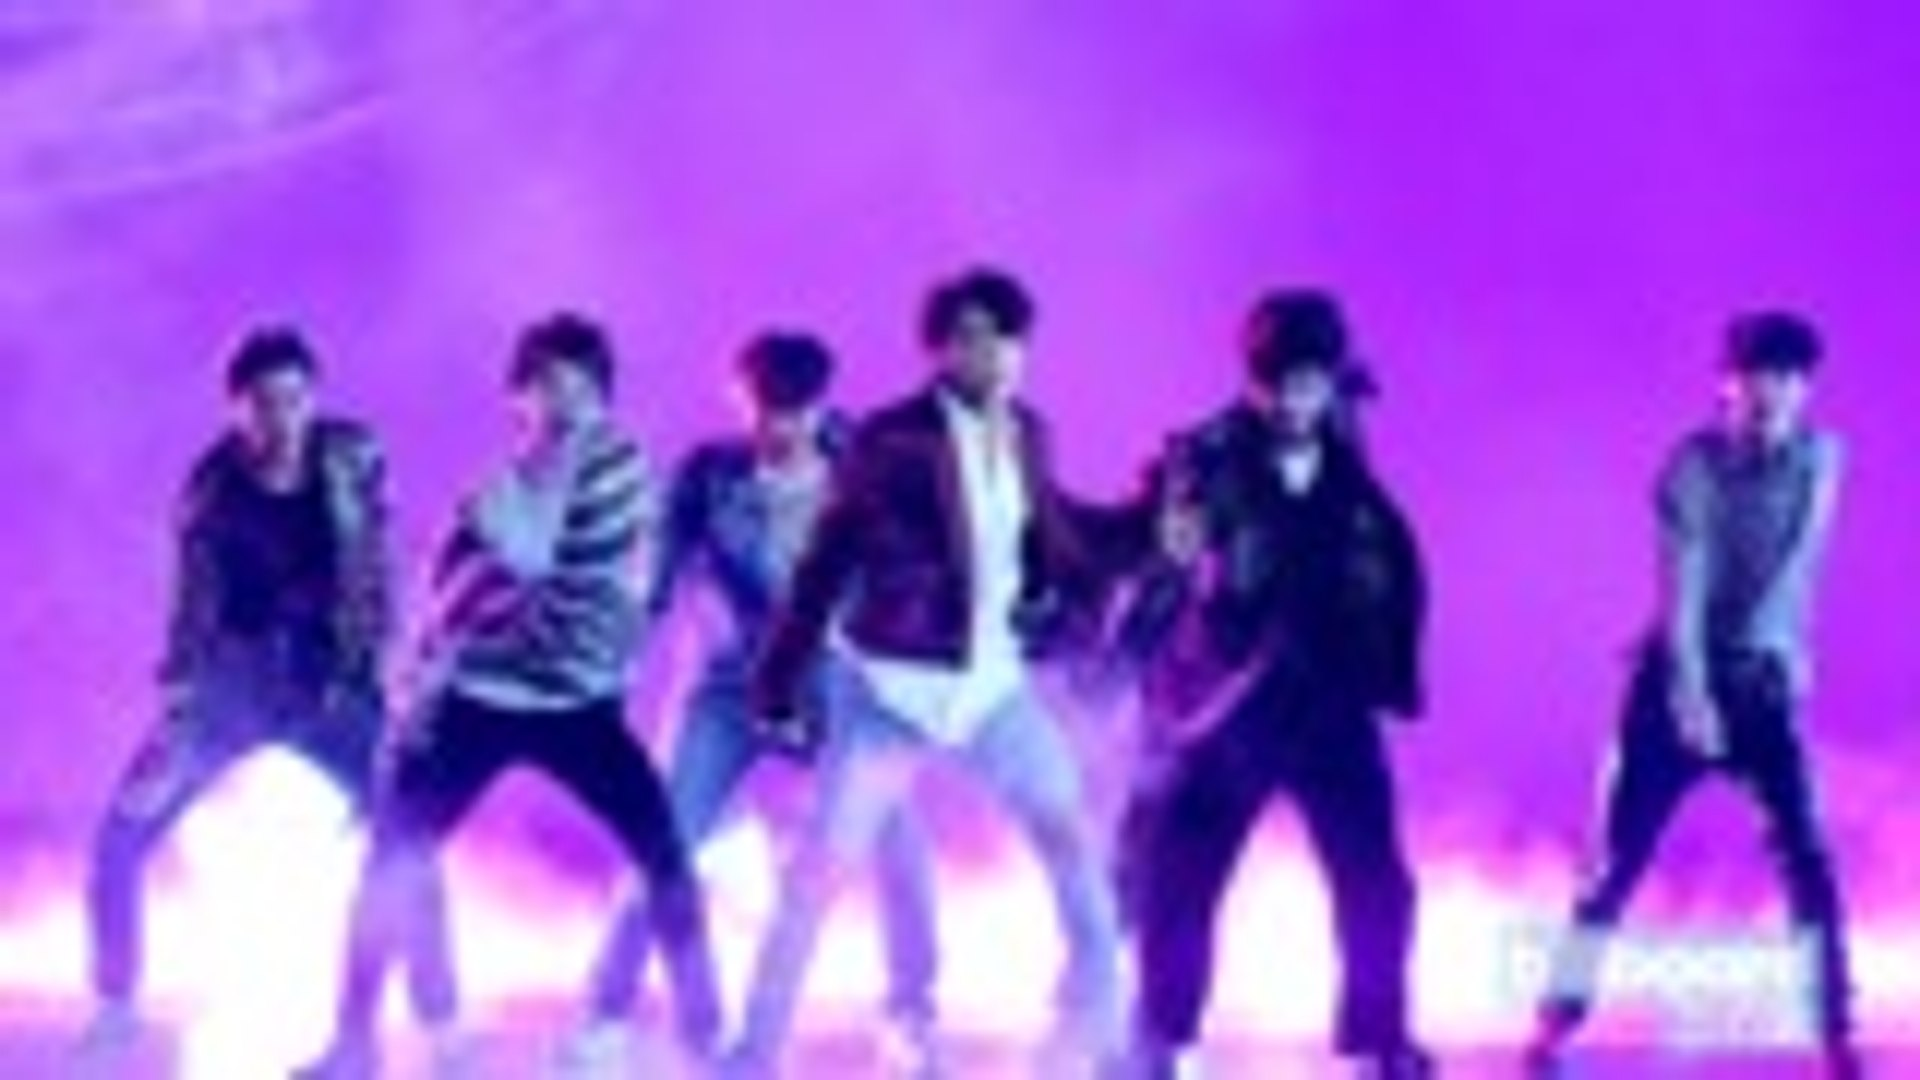 BTS' 'Boy With Luv' Feat. Halsey Jumps to No. 22 on Pop Songs Airplay Chart | Billboa